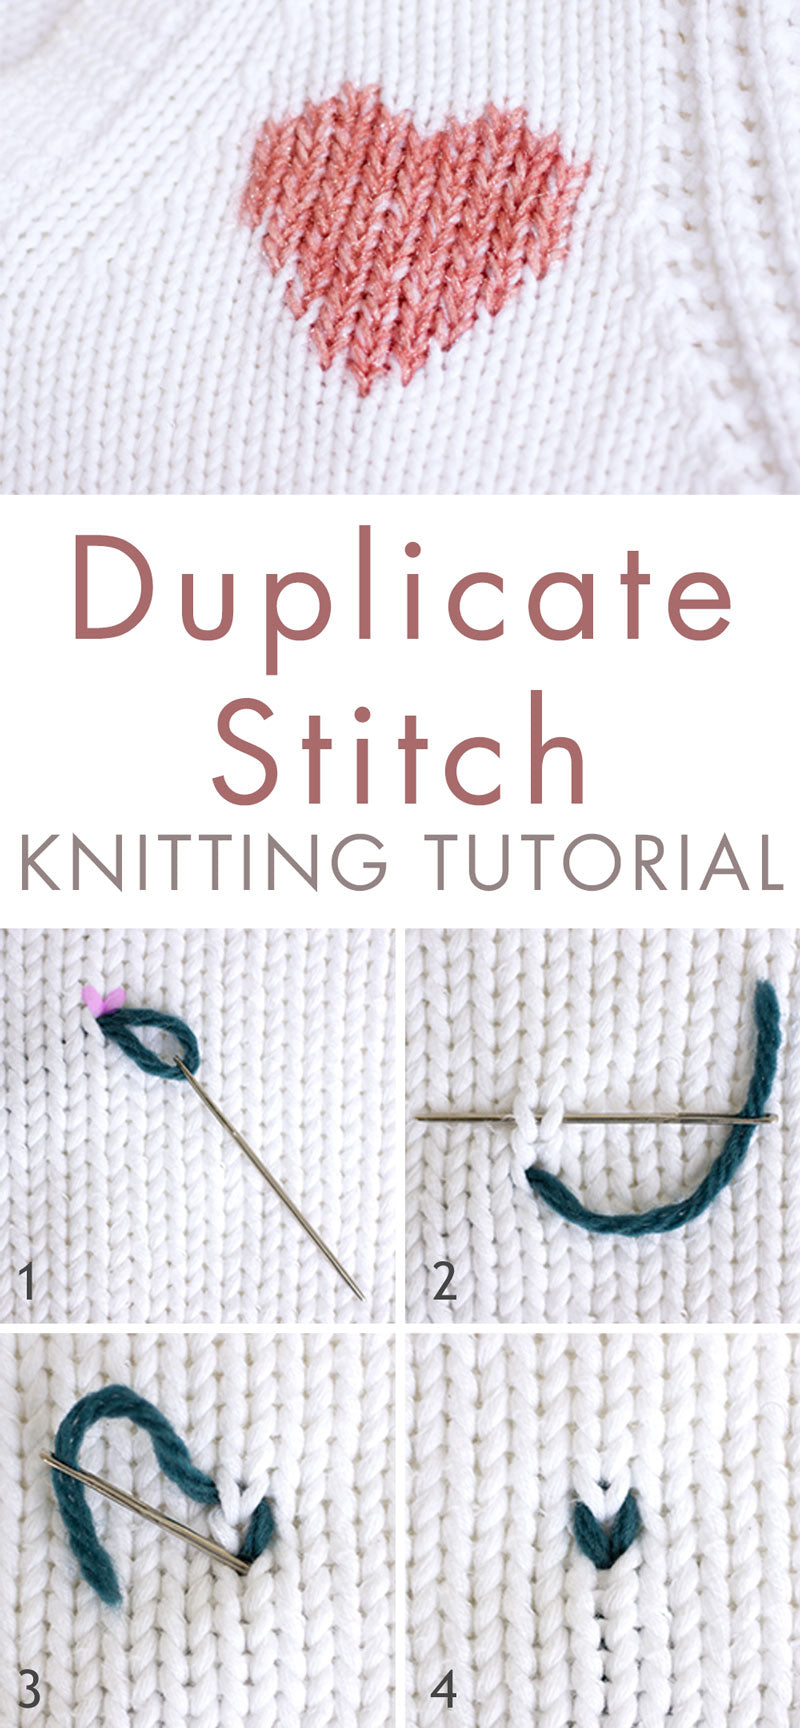 Duplicate stitch embroidery and knitting tutorial